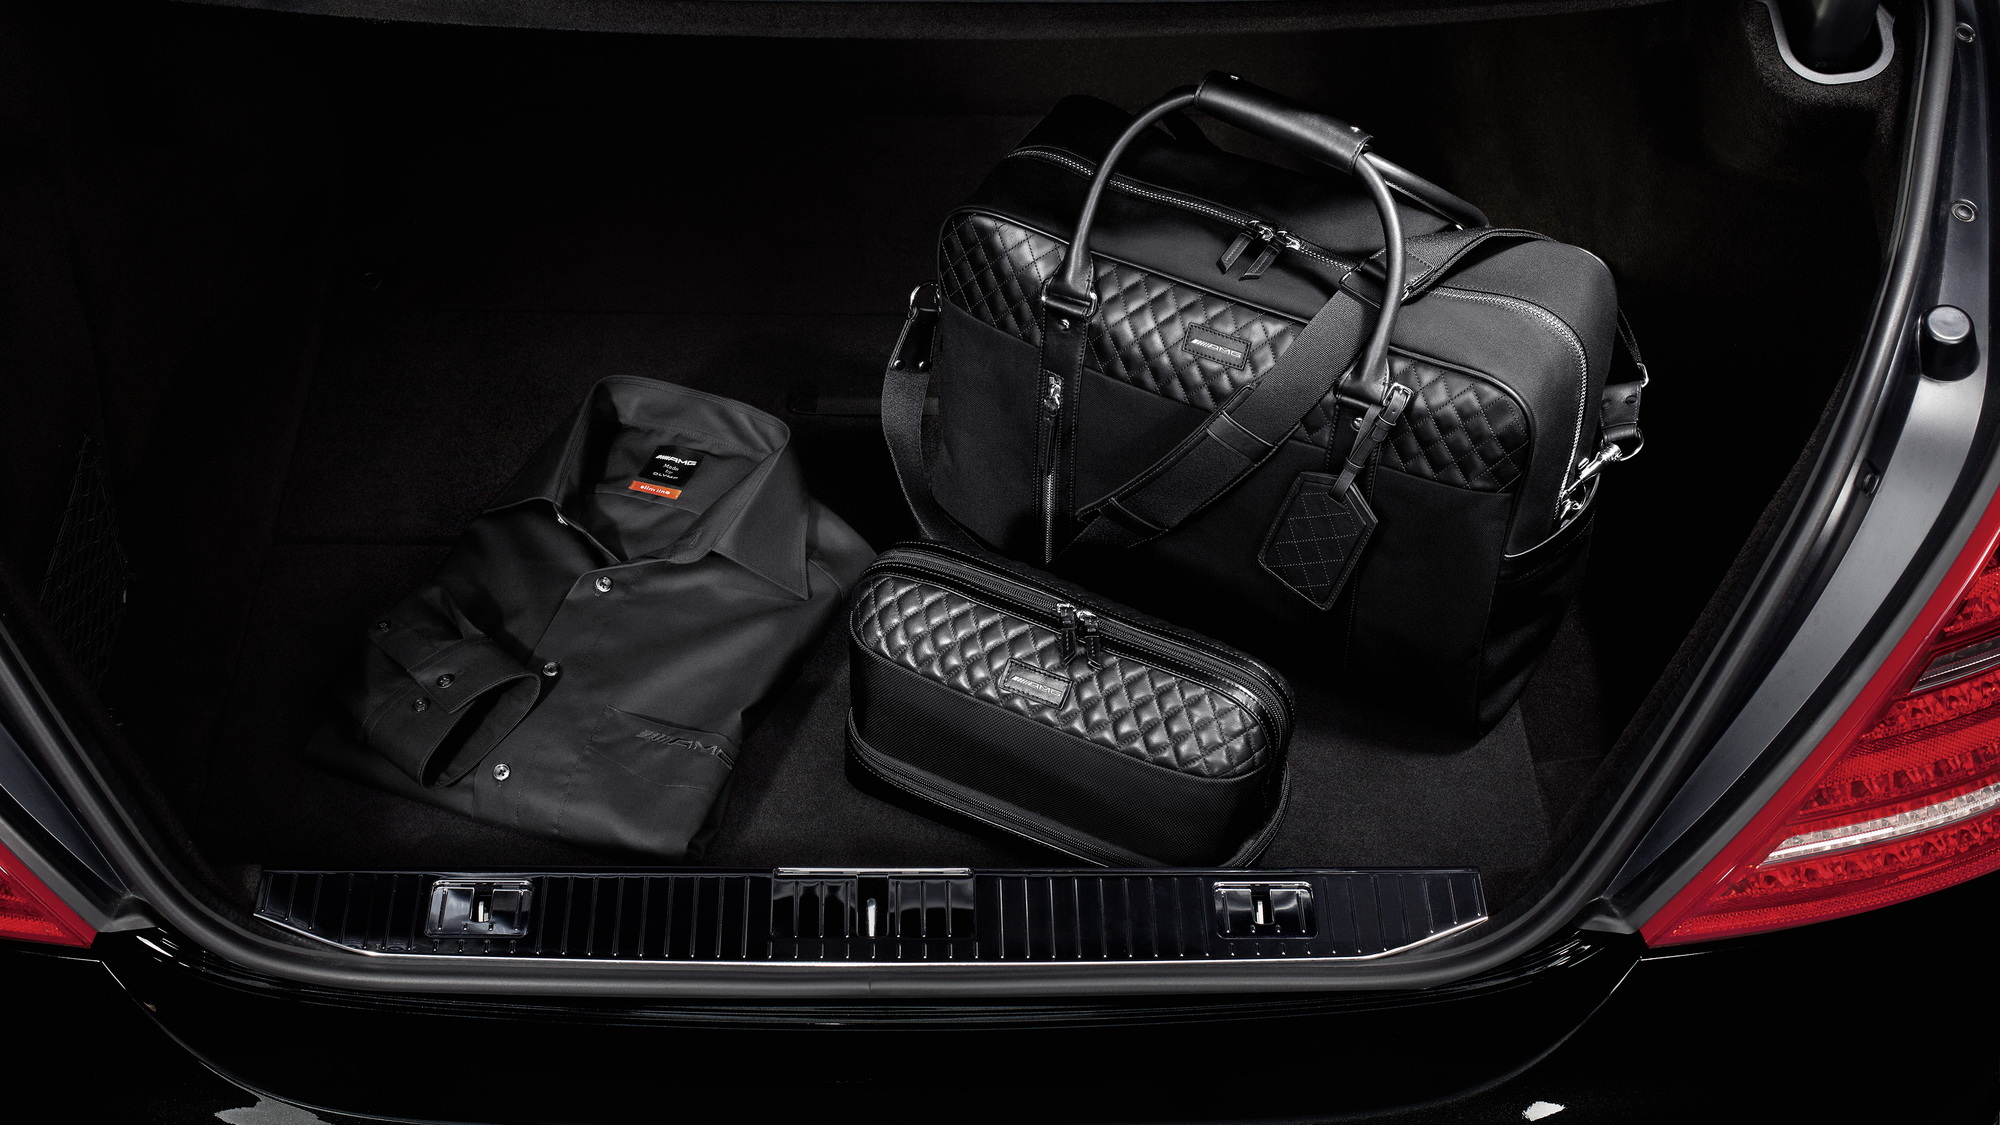 Mercedes-Benz AMG accessory range